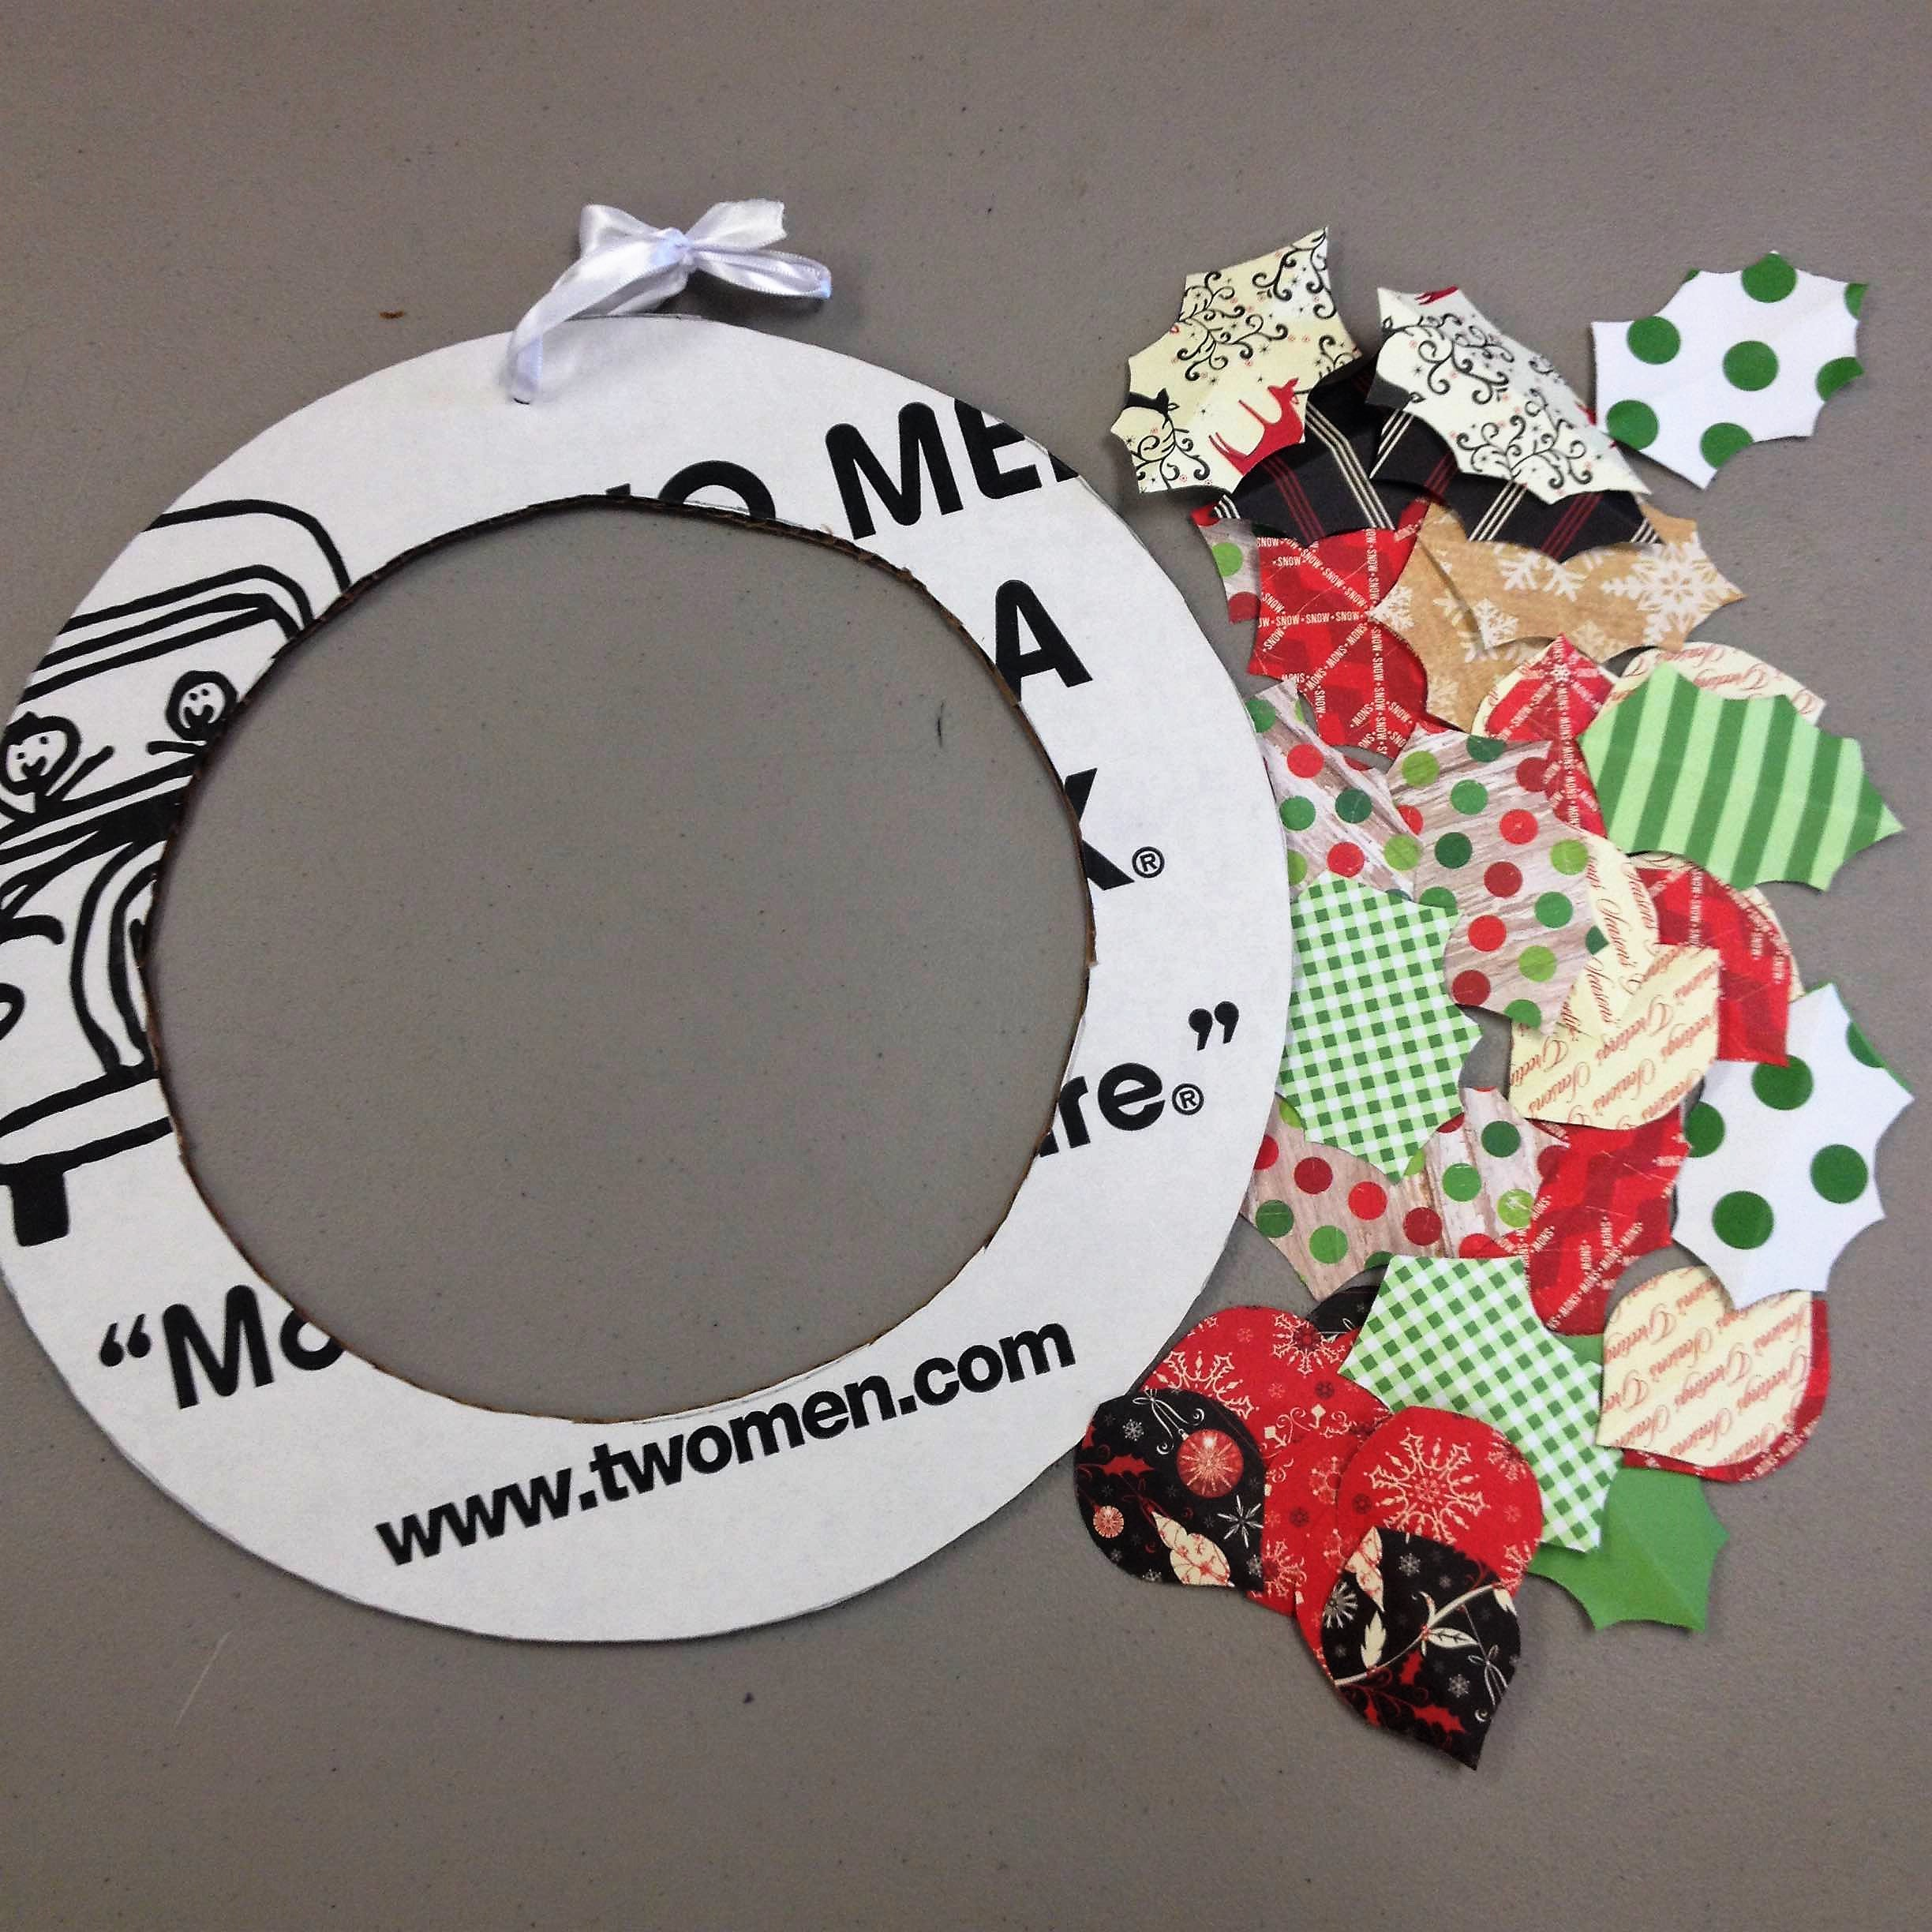 Diy Wreath Supplies Diy Seasonal Wreath From Moving Boxes Movers Who Blog In